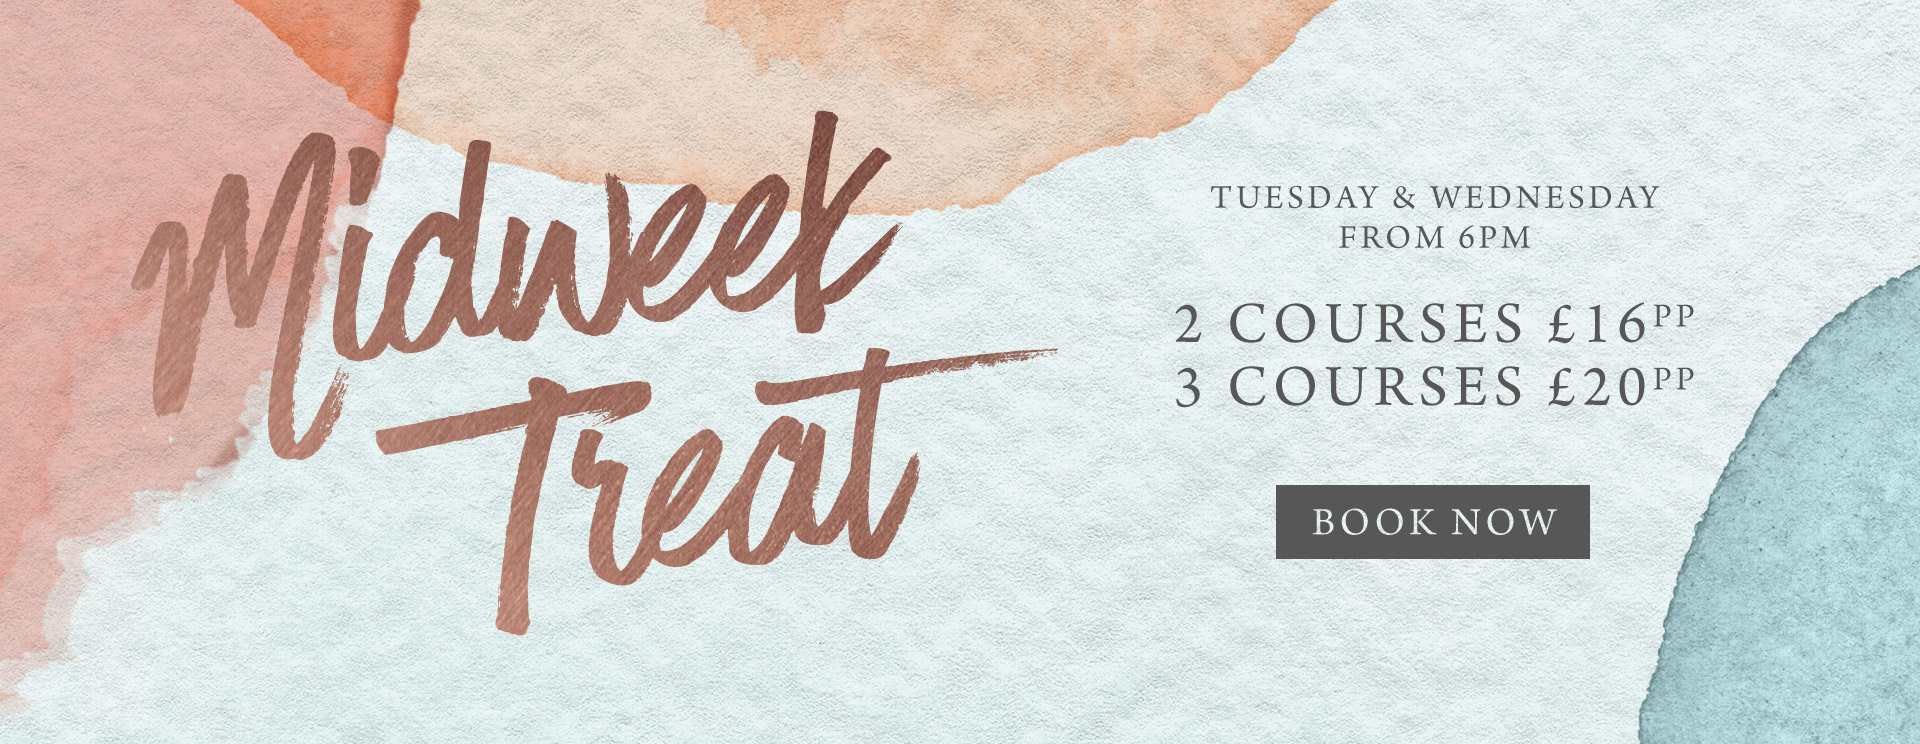 Midweek treat at The Pheasant - Book now